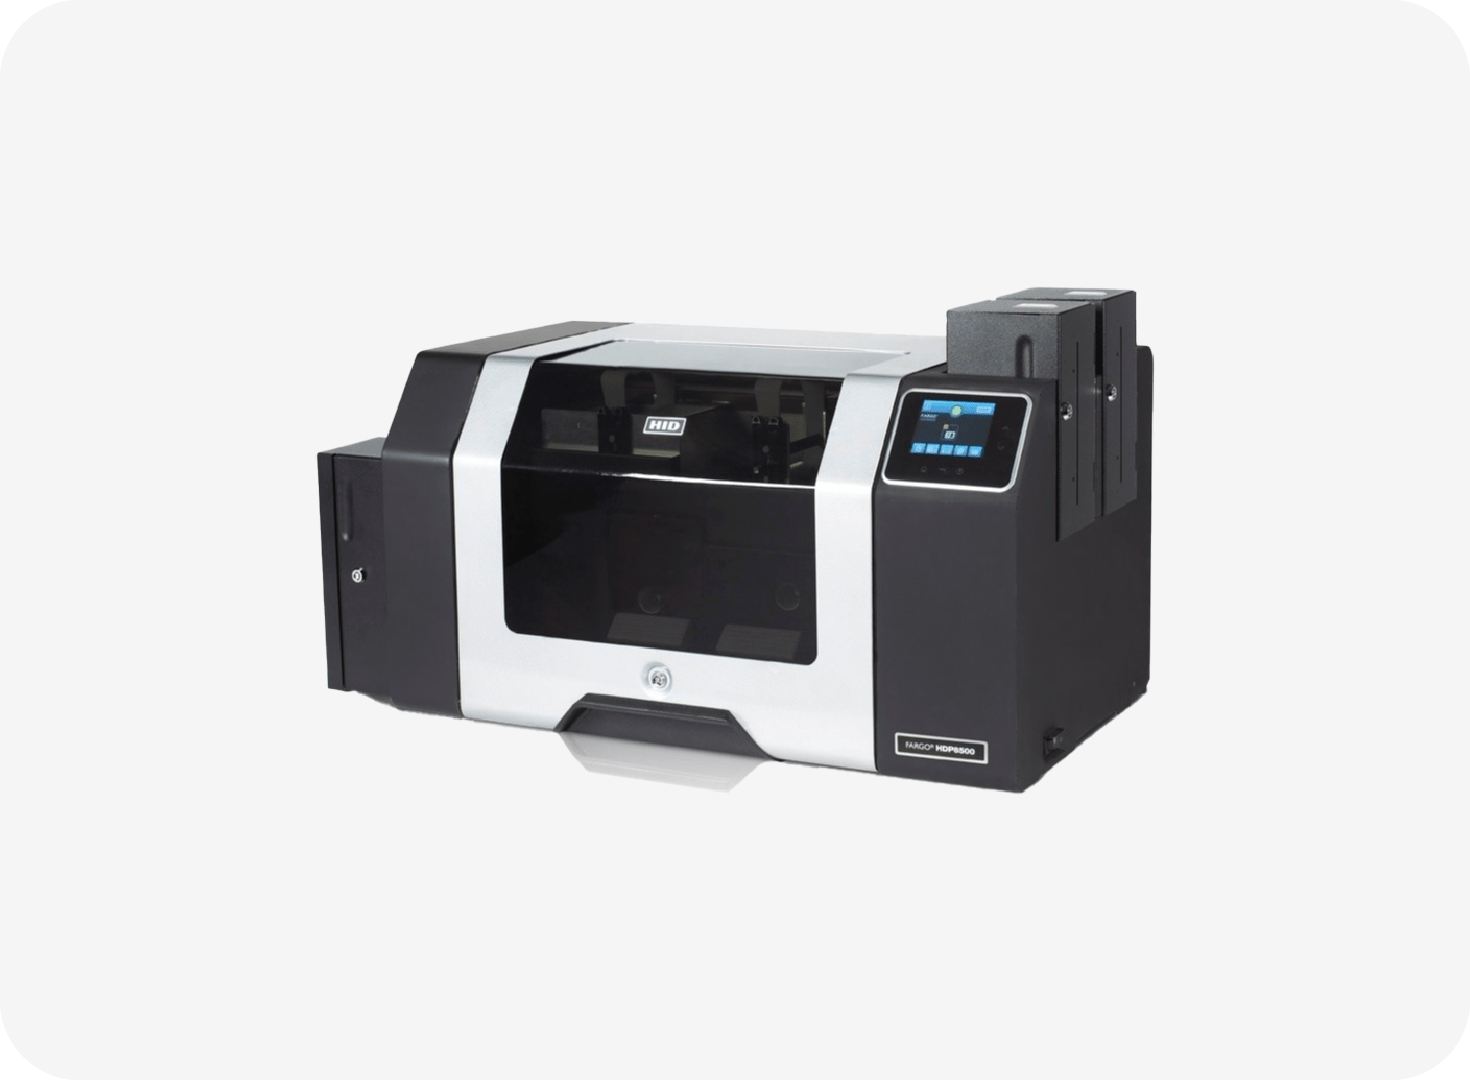 HID FARGO HDP8500 Industrial & Government ID Card Printer & Encoder